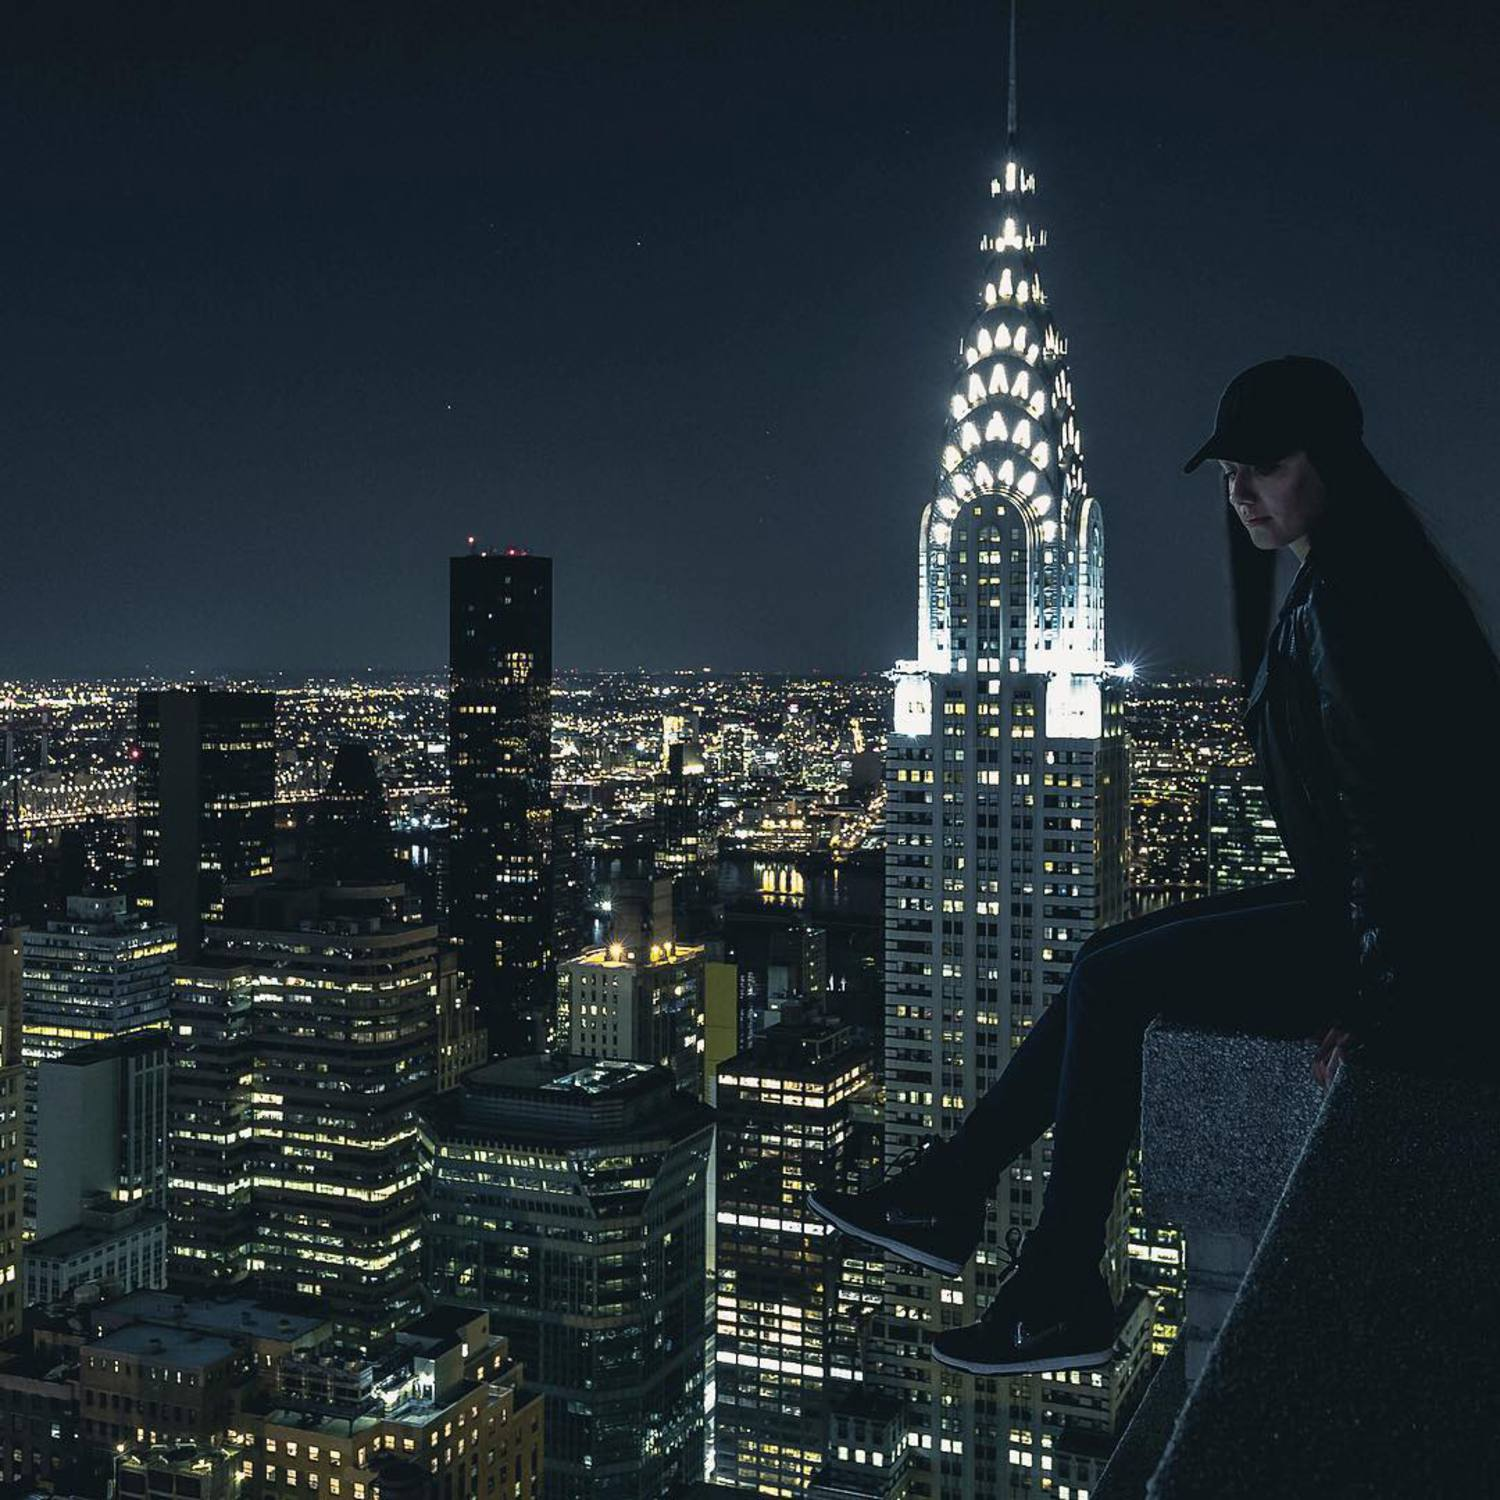 The biggest risks in life.. are the ones we didn't take. @usrnmeinvalid | #nyc